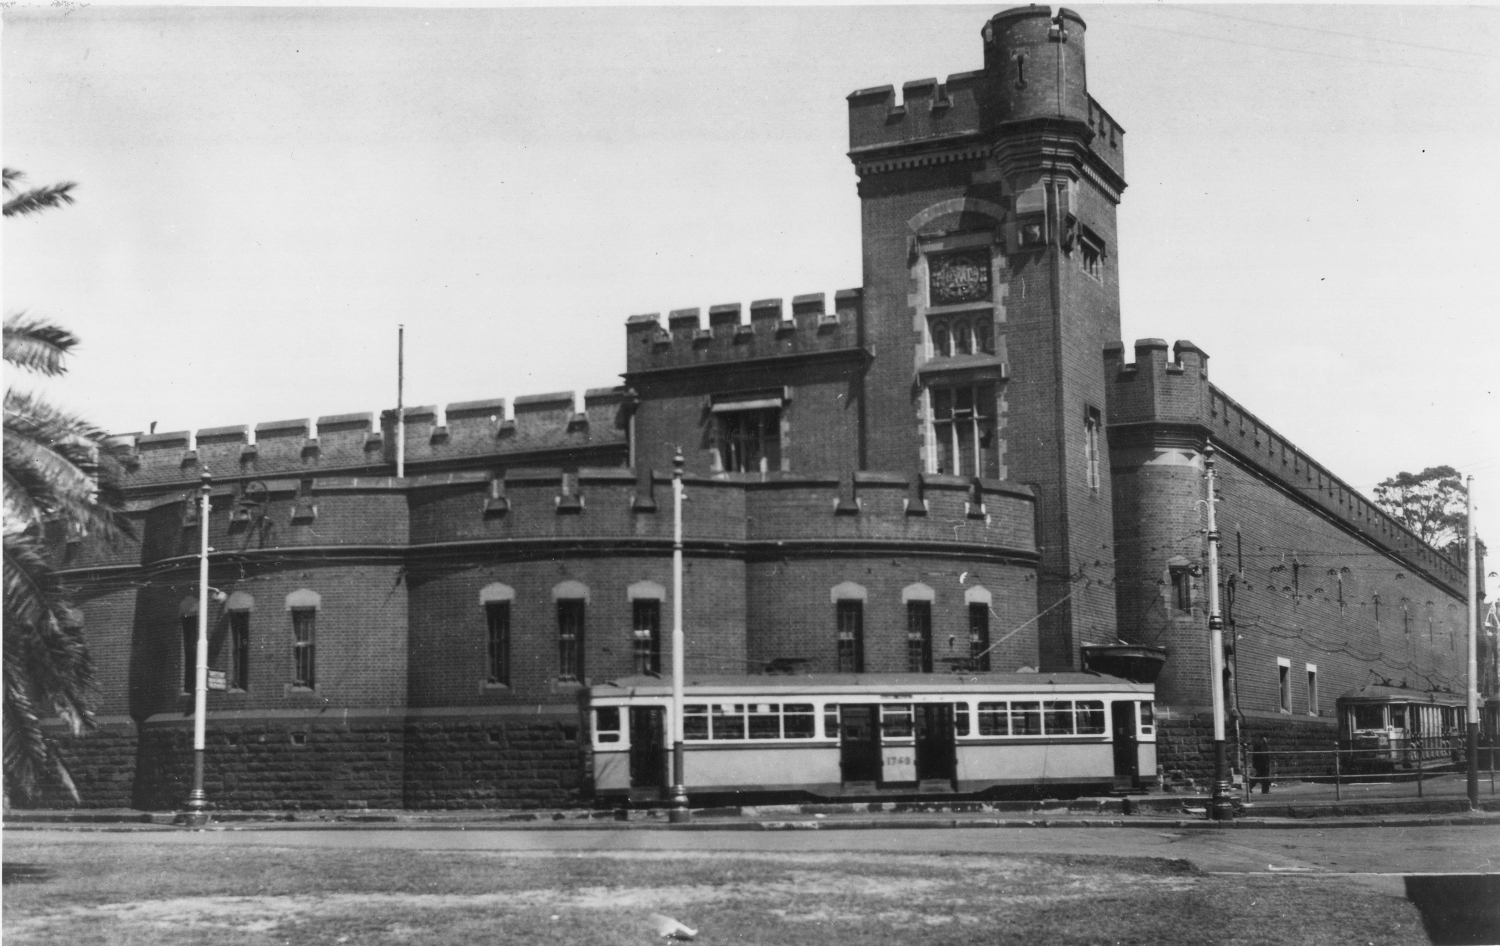 Black and white photograph of a building with a tram in the foreground.